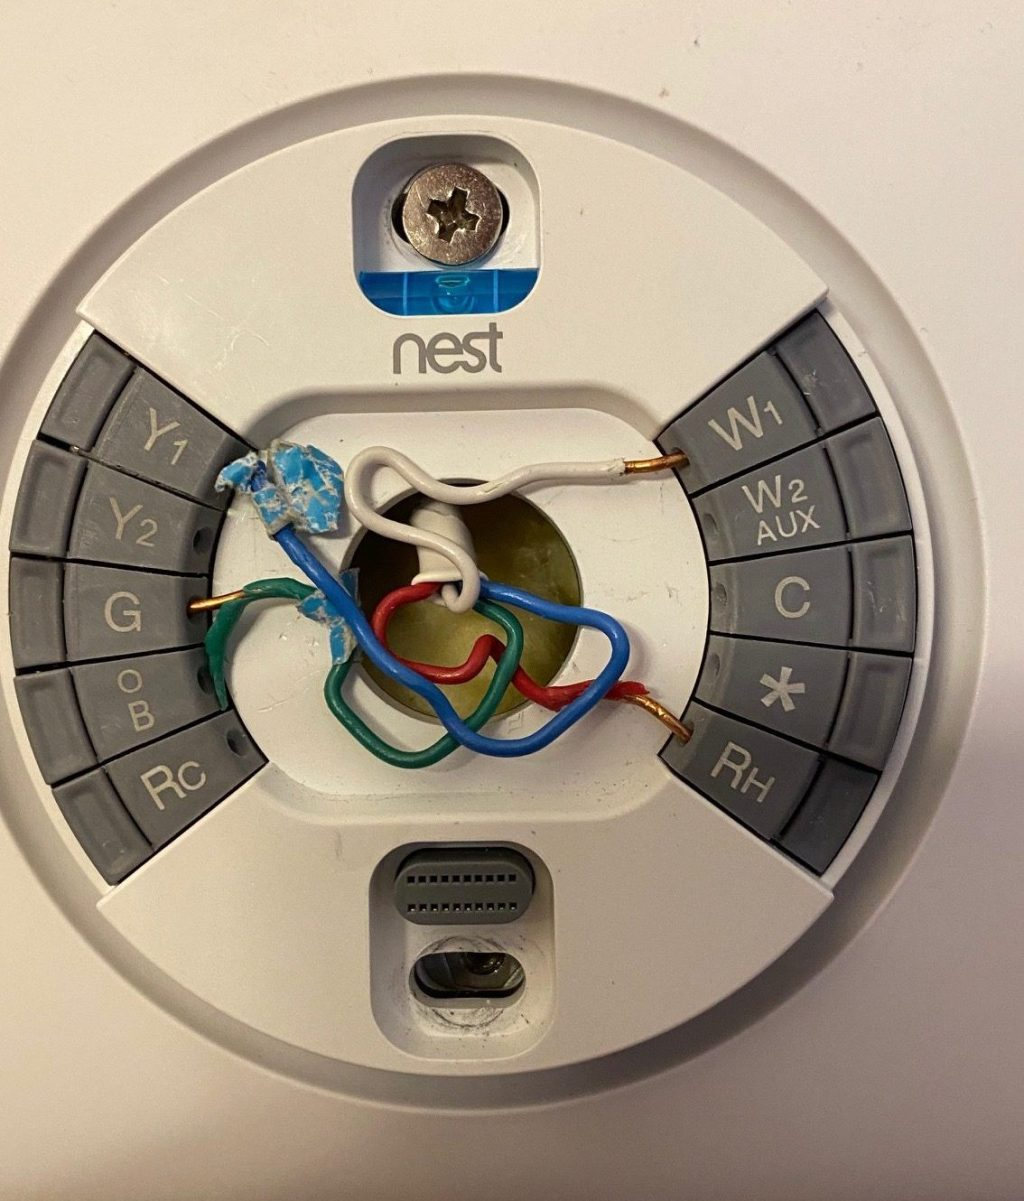 Nest Thermostat Troubleshooting And Why I Ditched The Nest For Honeywell